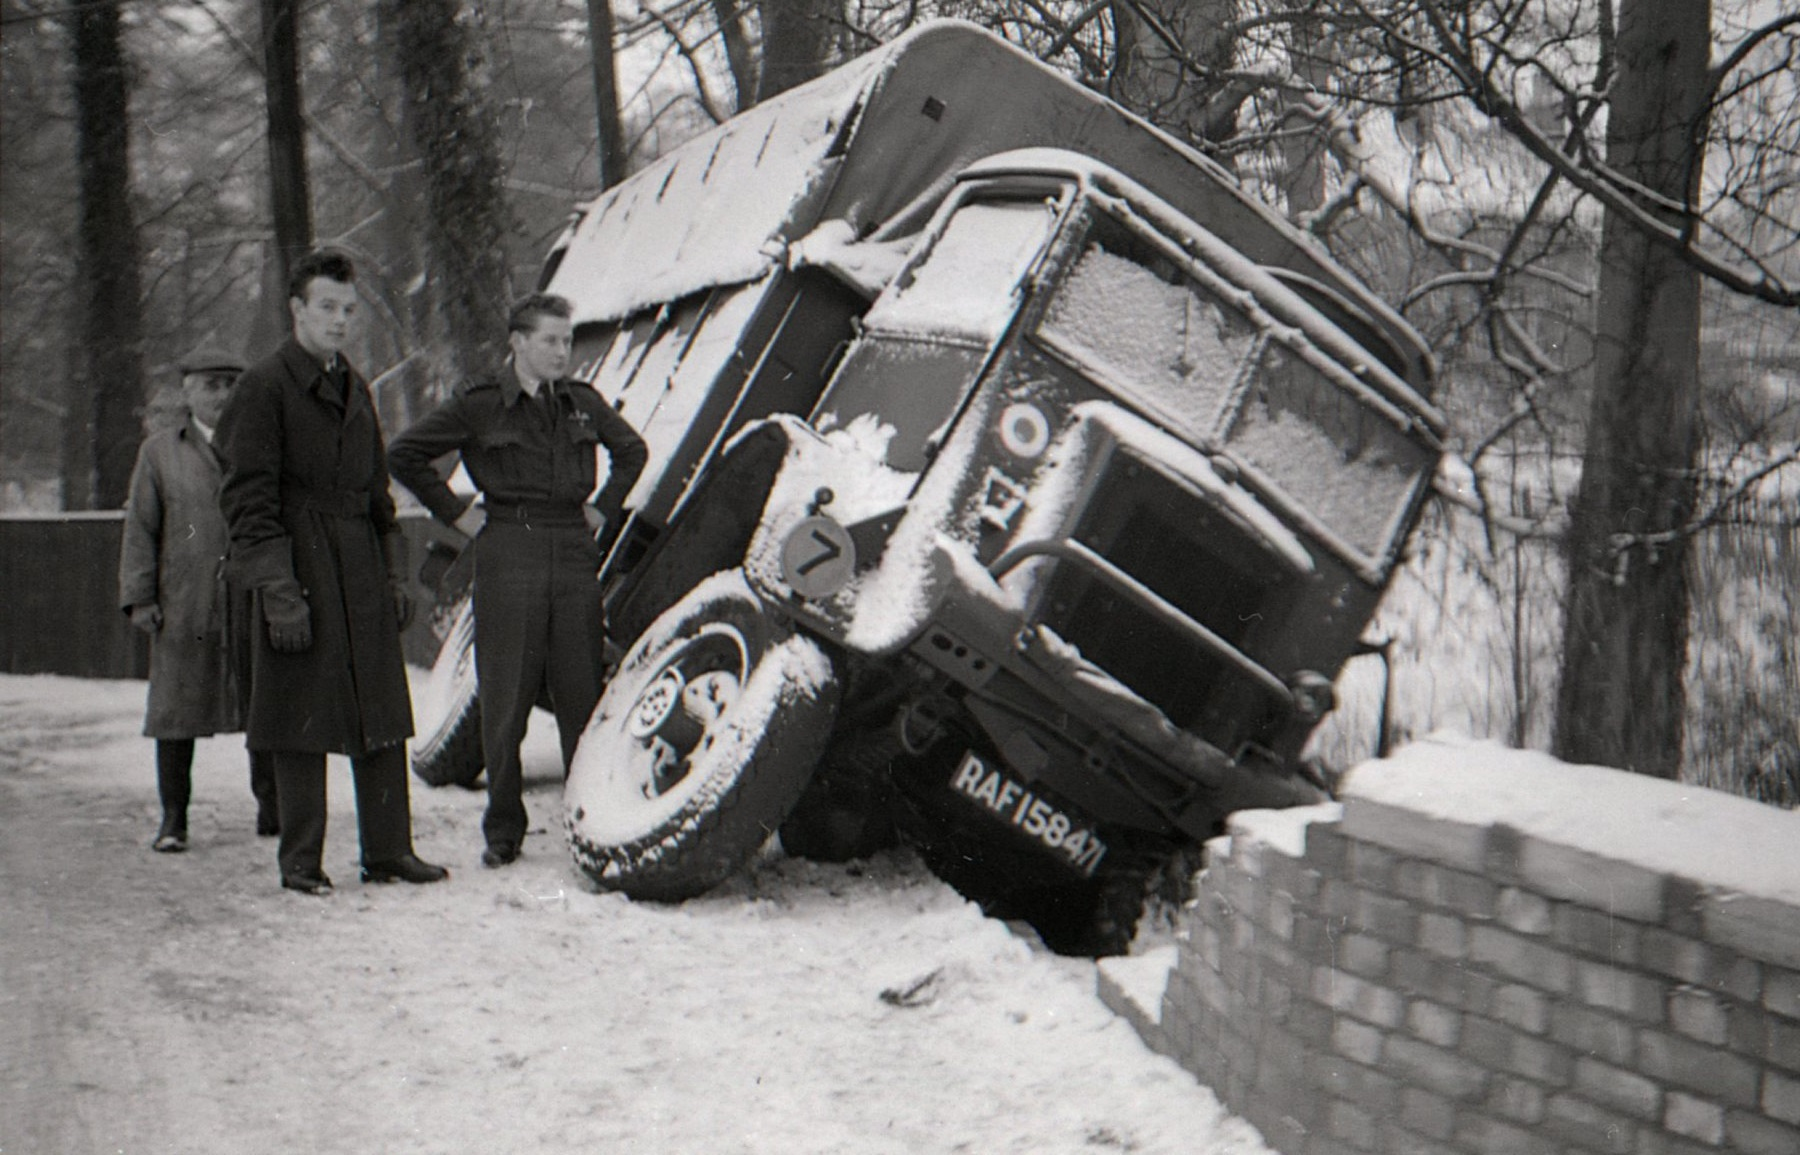 Broadwater lorry accident